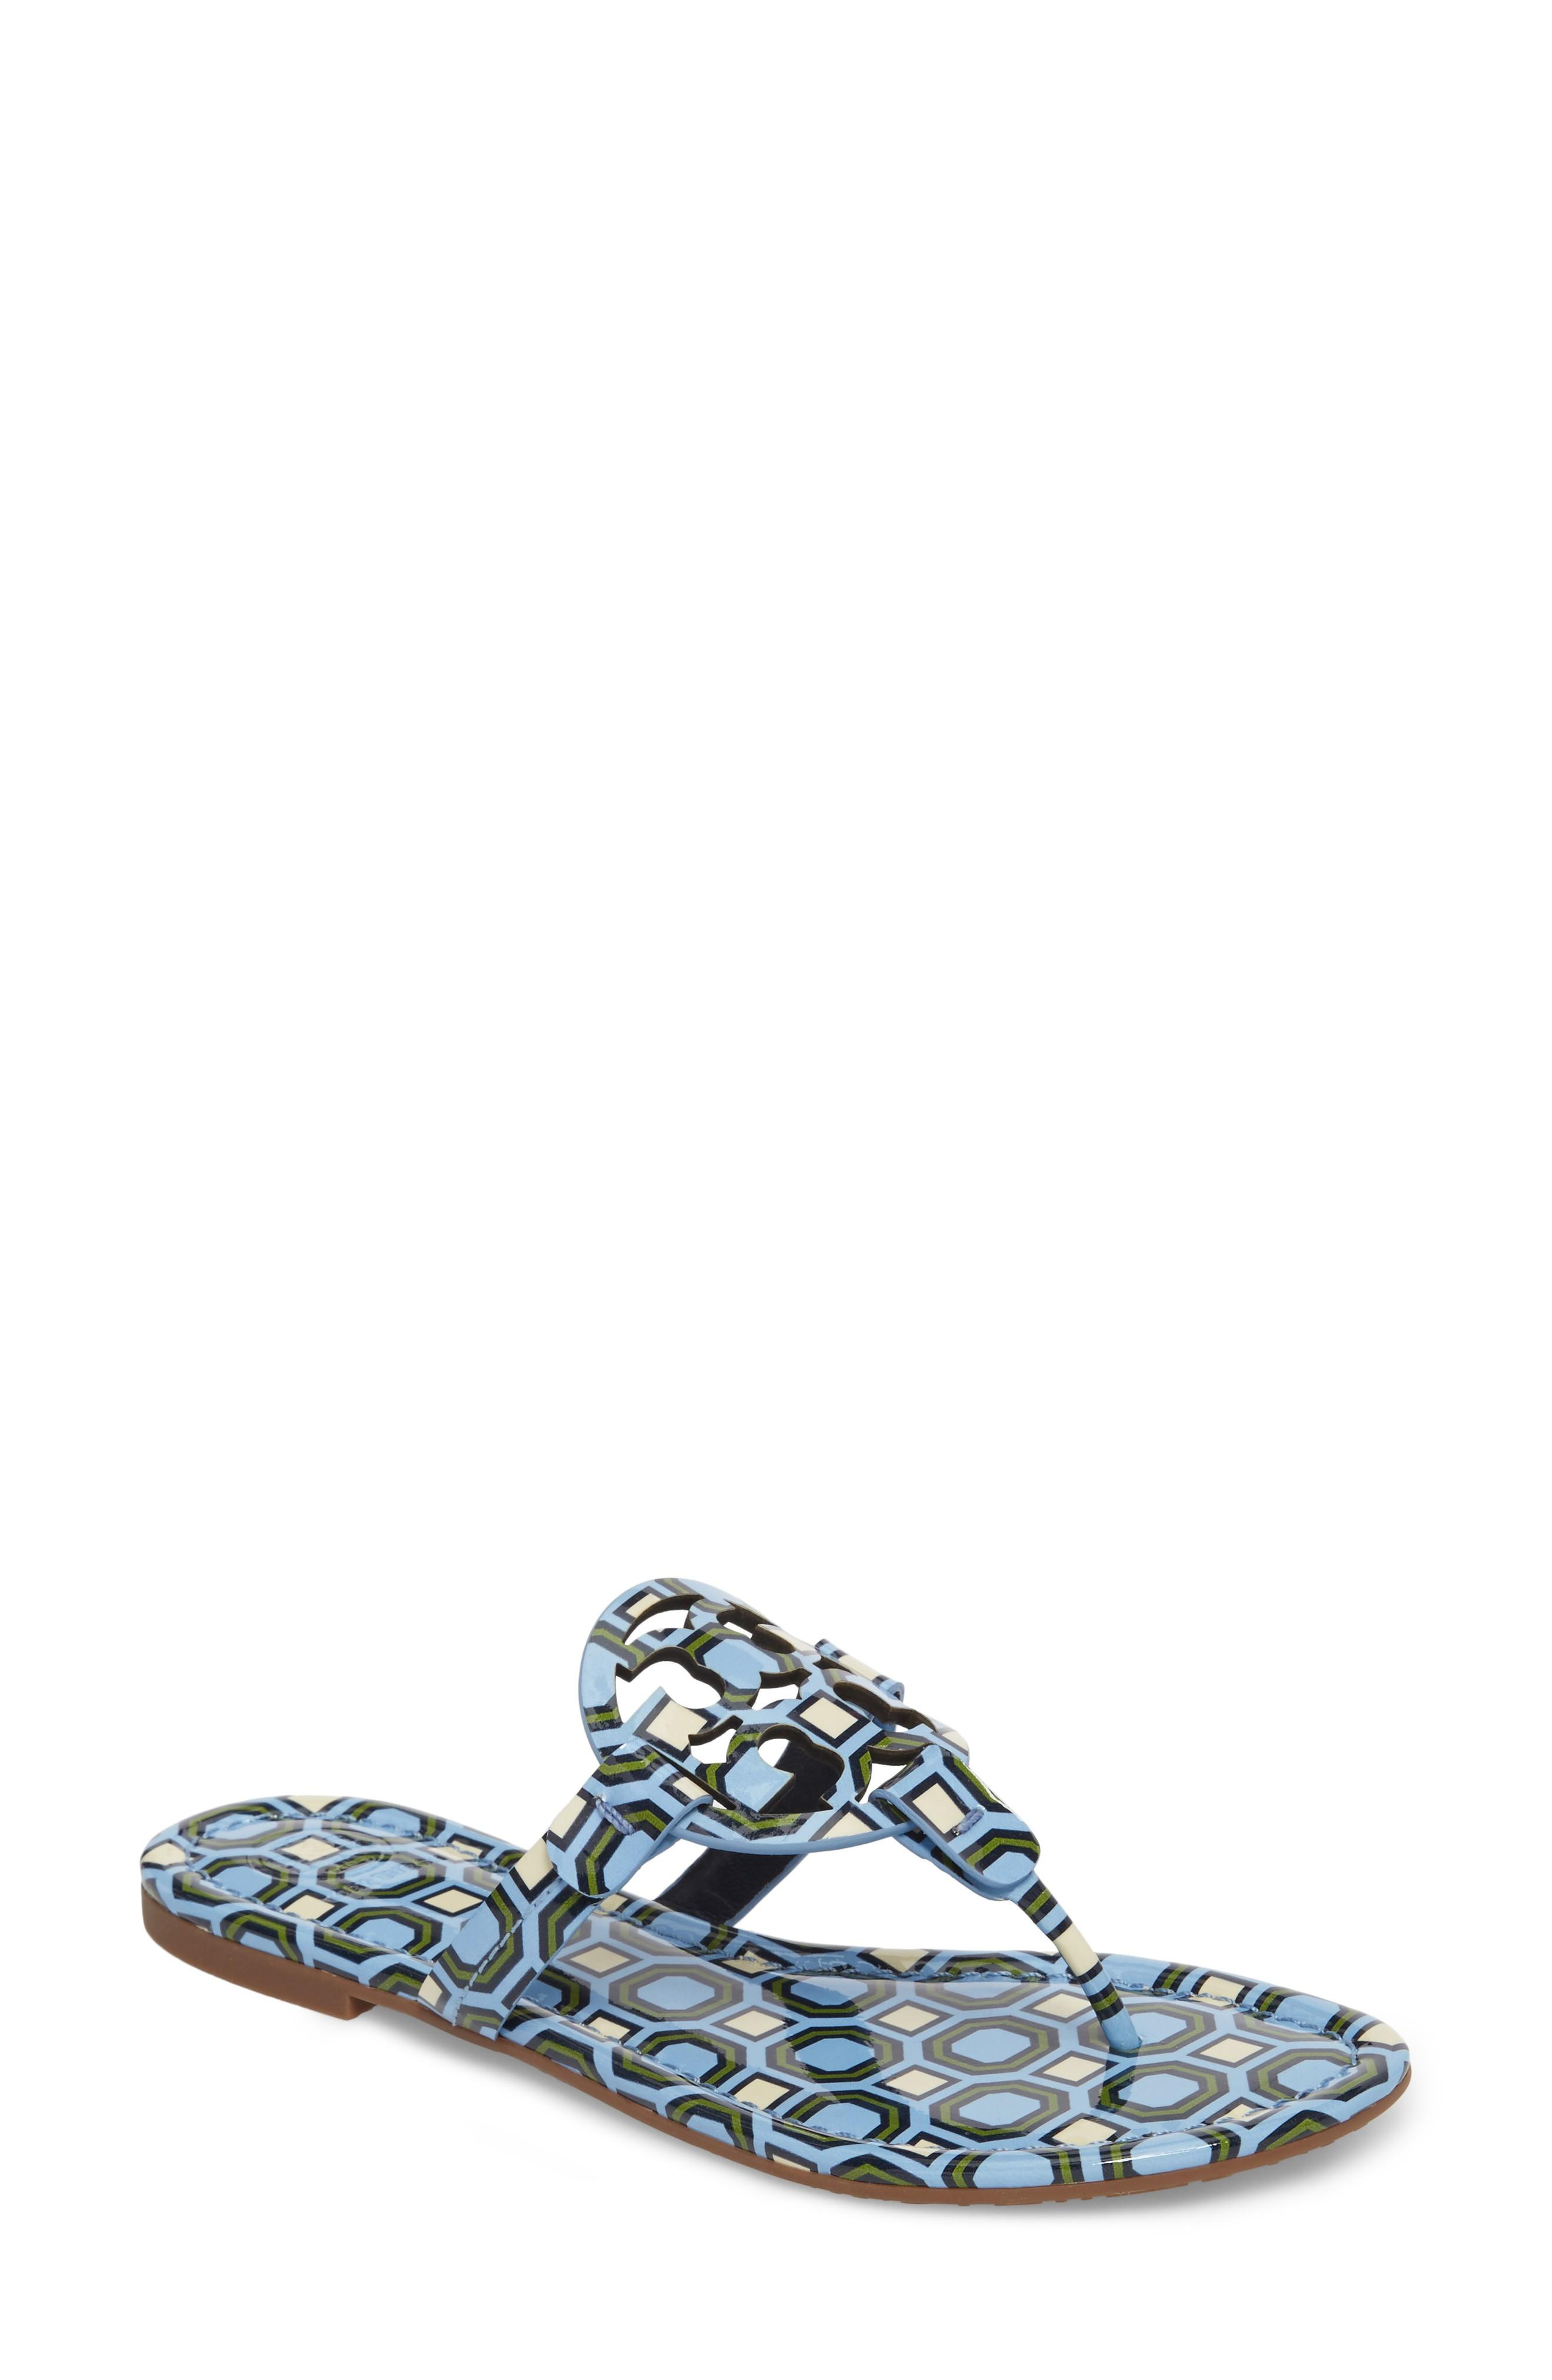 f537d85d8dc76 ... a bold logo cutout across the instep. A foam-cushioned footbed makes it  a comfortable choice for long summertime days. Style Name  Tory Burch   Miller  ...